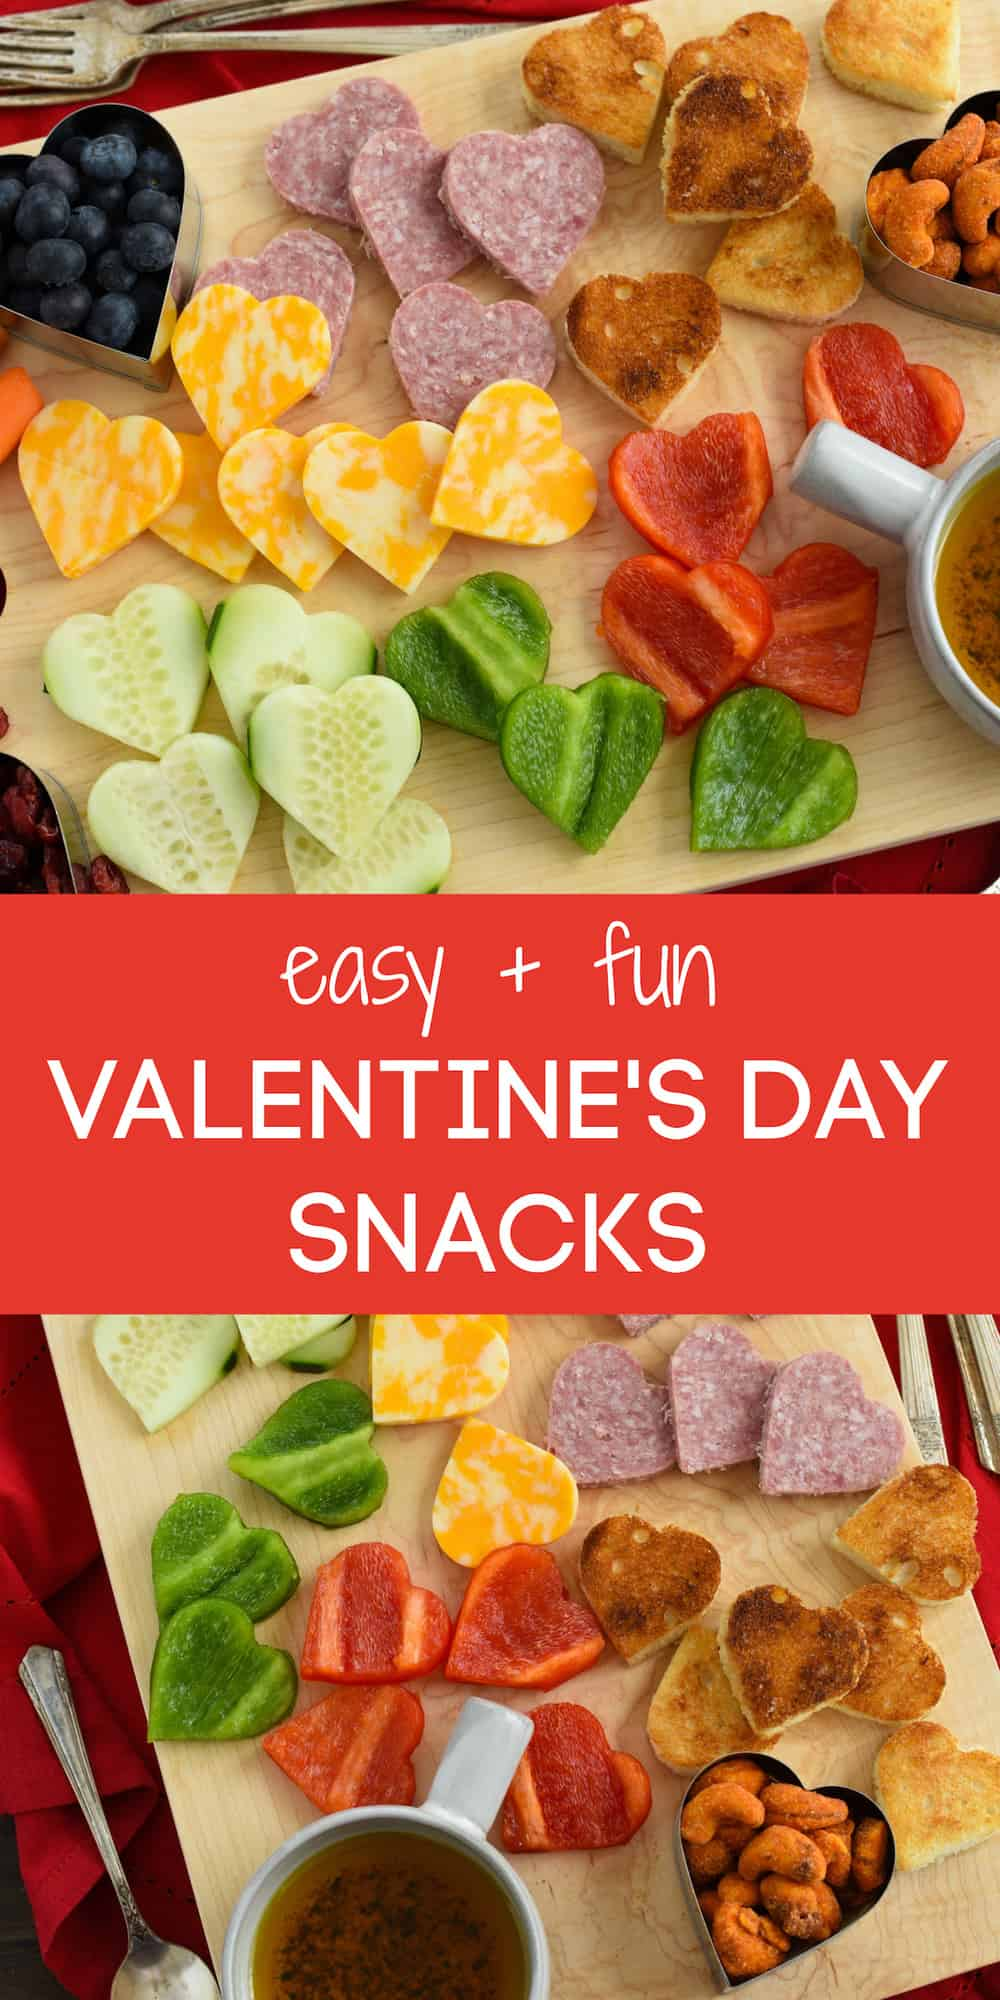 Grab a heart-shaped cookie cutter and put together these easy and fun Valentine's Day Snacks for your kids, friends, or sweetheart. | foxeslovelemons.com